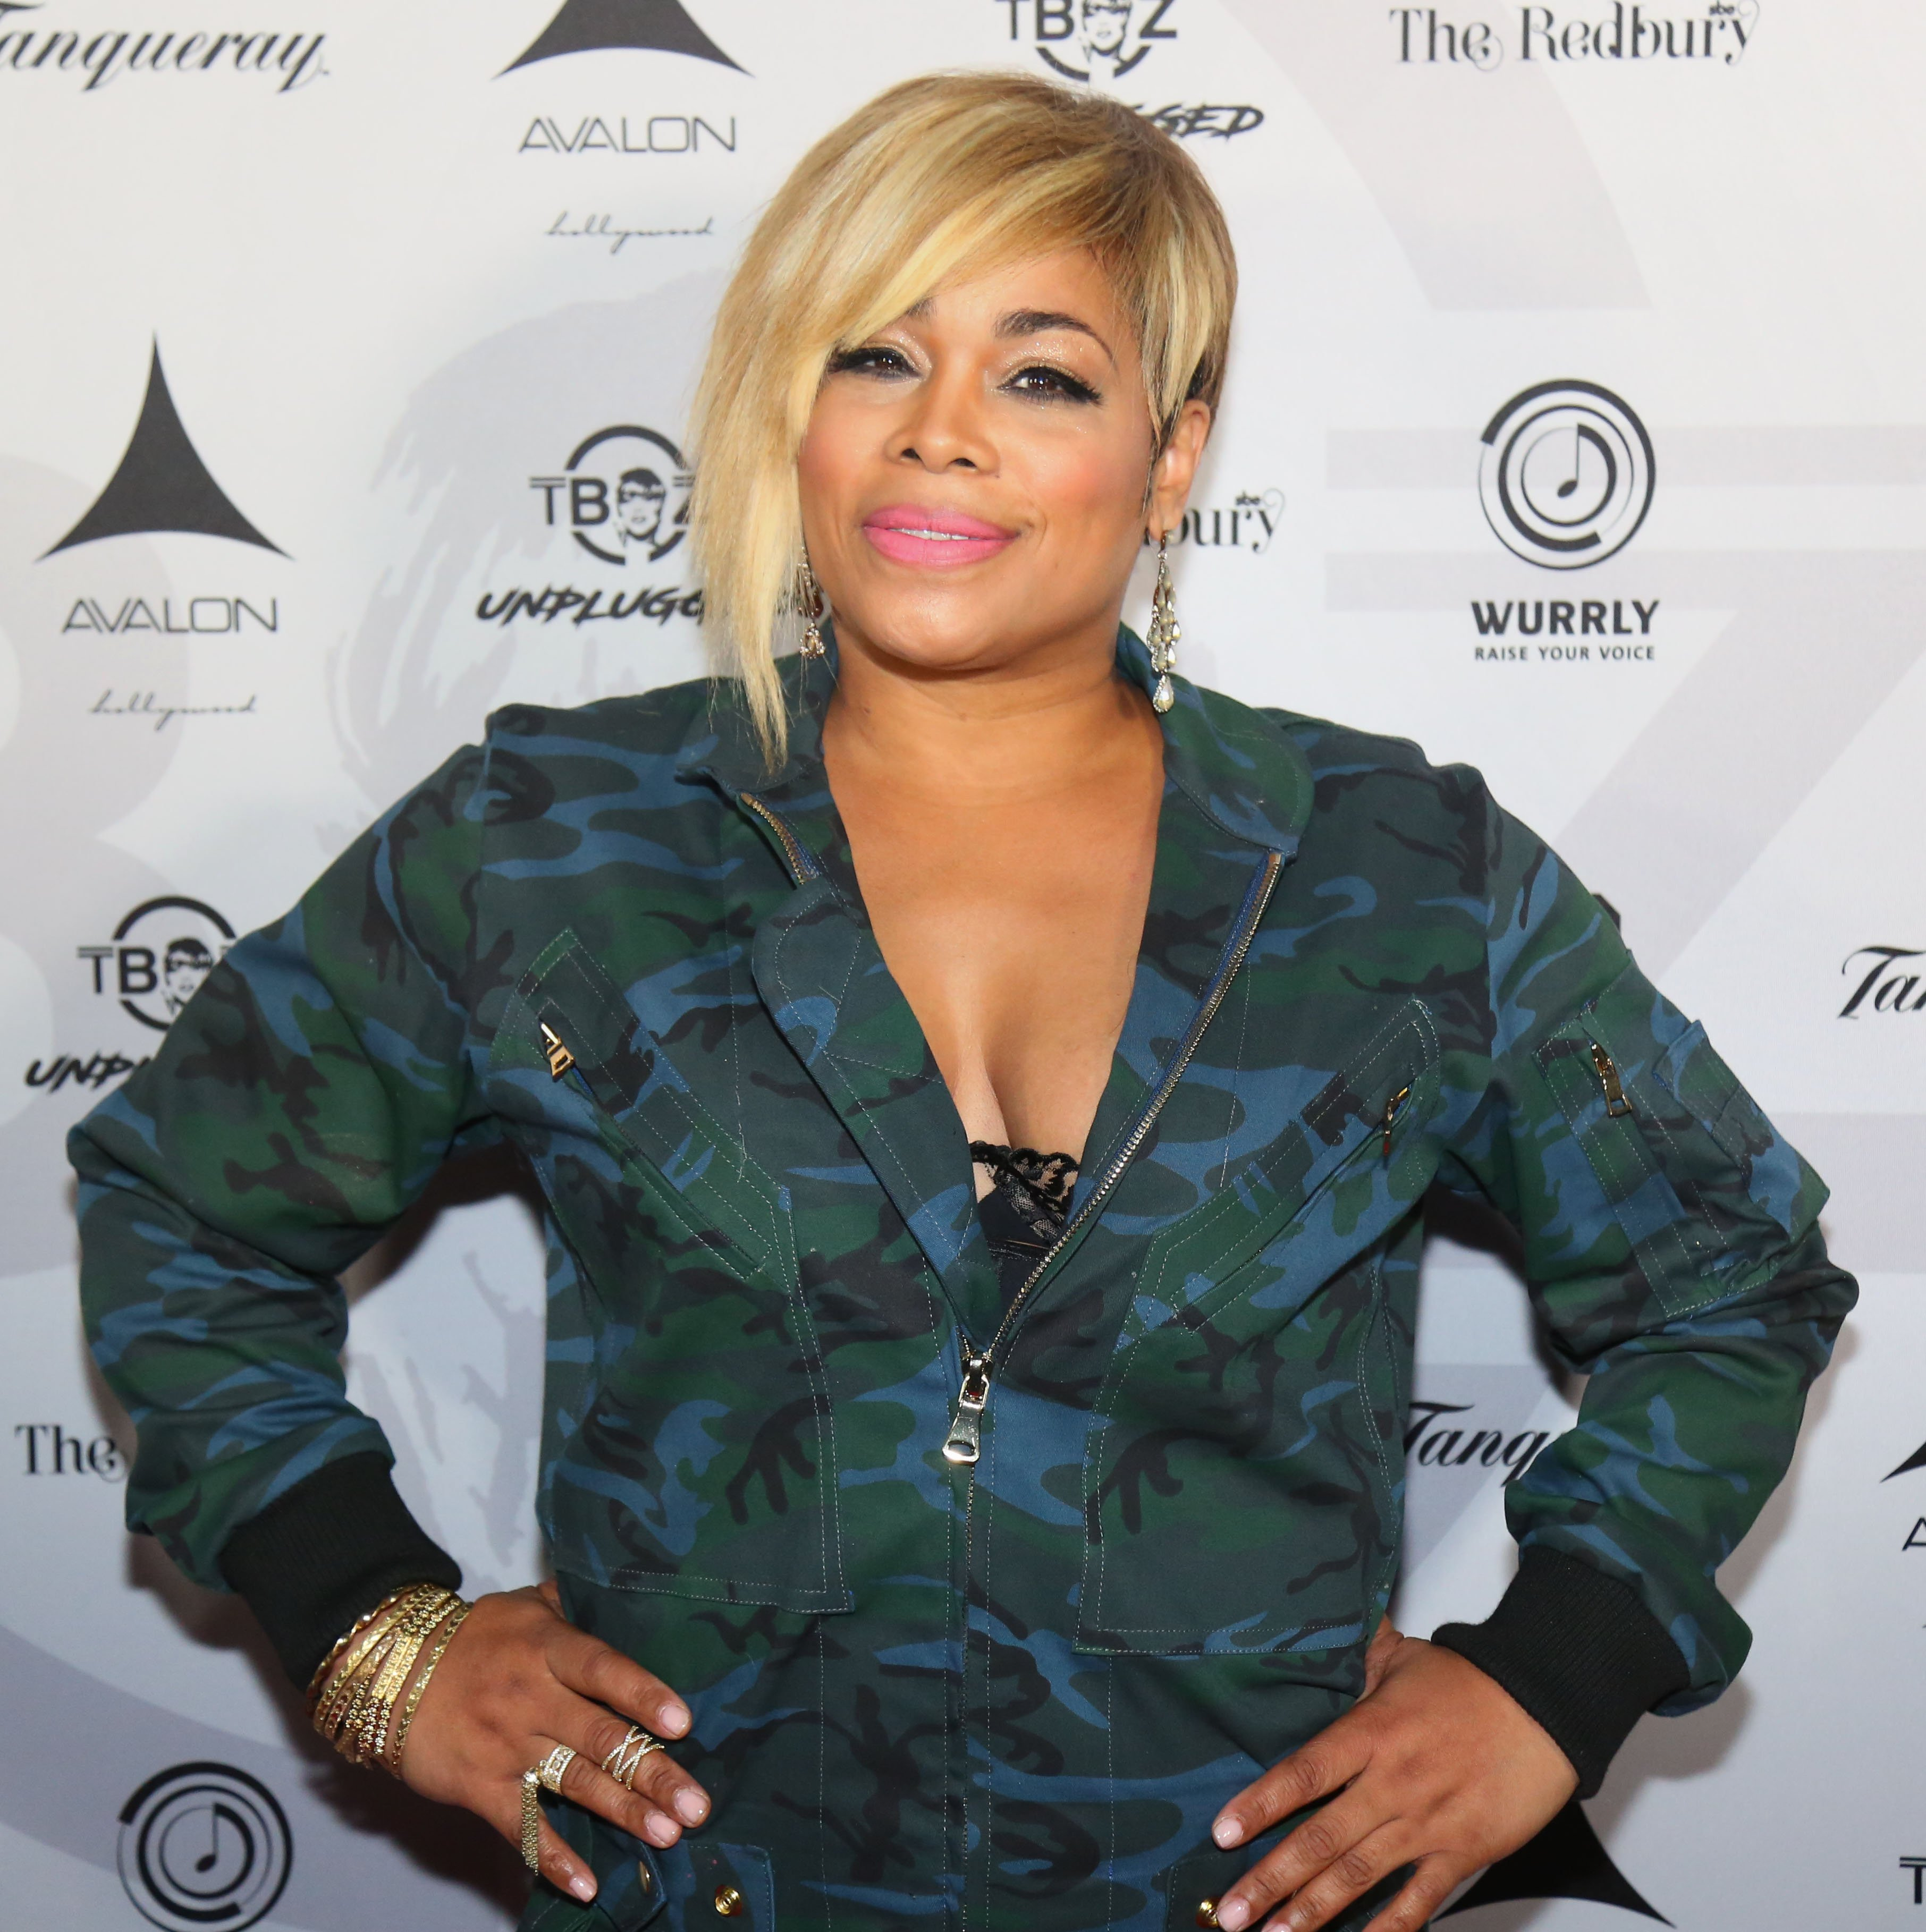 """Singer Tionne """"T-Boz"""" Watkins arrives at the T-Boz Unplugged Benefit Concert at Avalon on January 15, 2017.   Photo: Getty Images"""